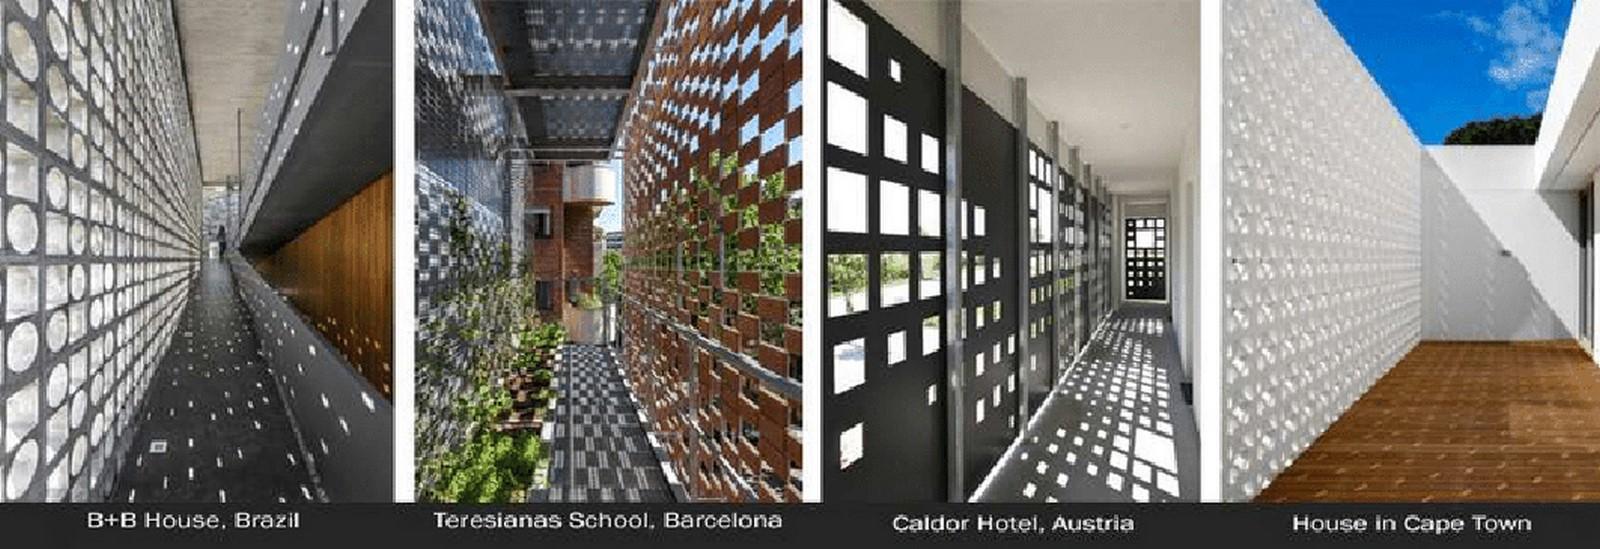 Architecture Concepts - Public and private: - Sheet1